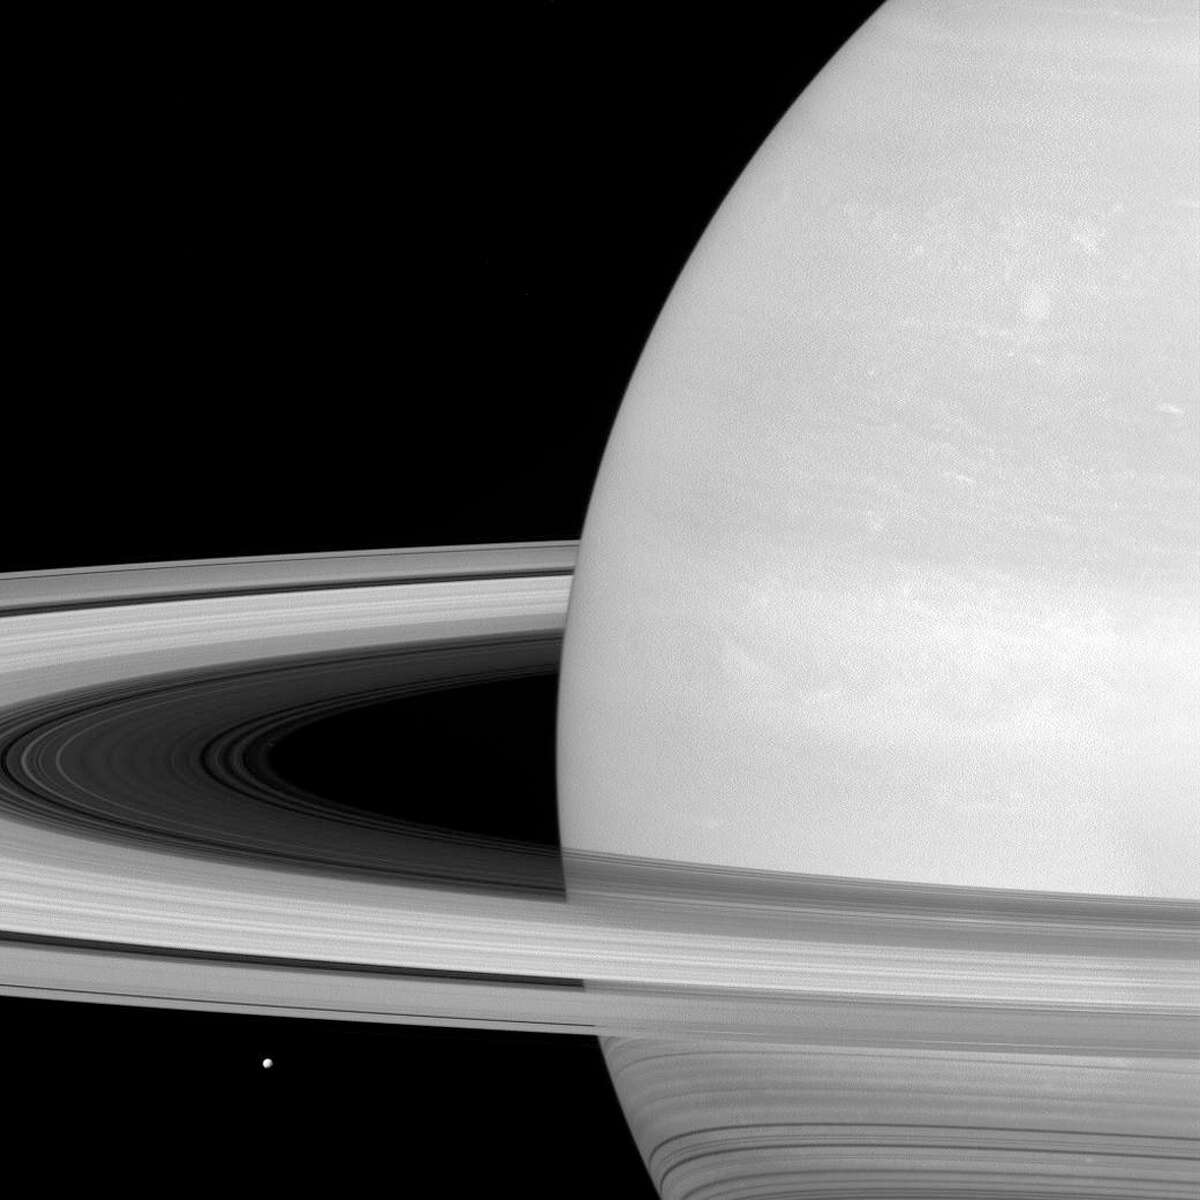 This undated photo made available by NASA shows one of Saturn's moons, Mimas, dwarfed by the planet's rings. Launched in 1997, Cassini reached Saturn in 2004 and has been exploring it from orbit ever since. CassiniÂ?'s fuel tank is almost empty, so NASA has opted for a risky, but science-rich grand finale. (NASA/JPL-Caltech/Space Science Institute via AP)